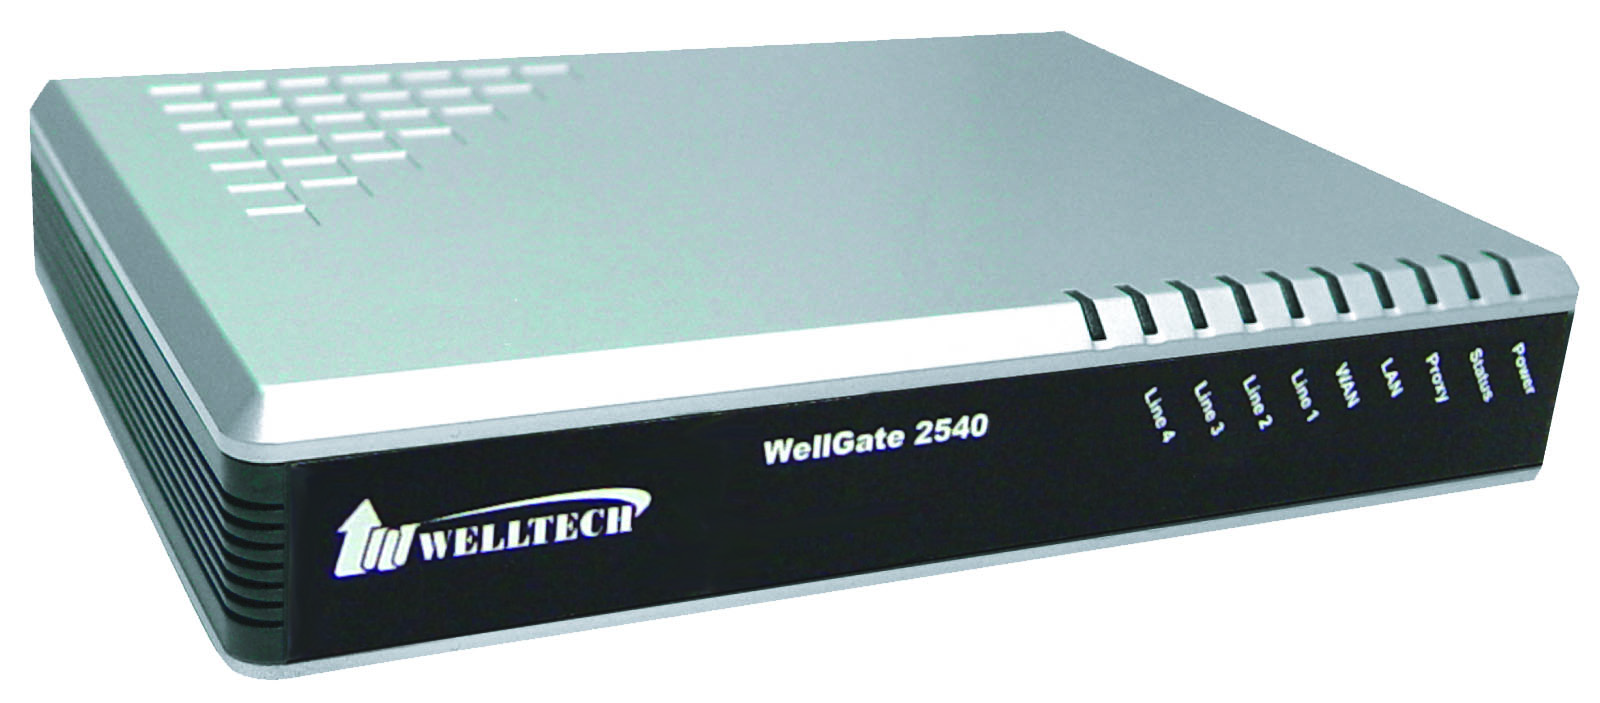 Welltech Wellgate 2540 - 4 port FXO (PSTN/POTS) Analog VoIP Gateway (